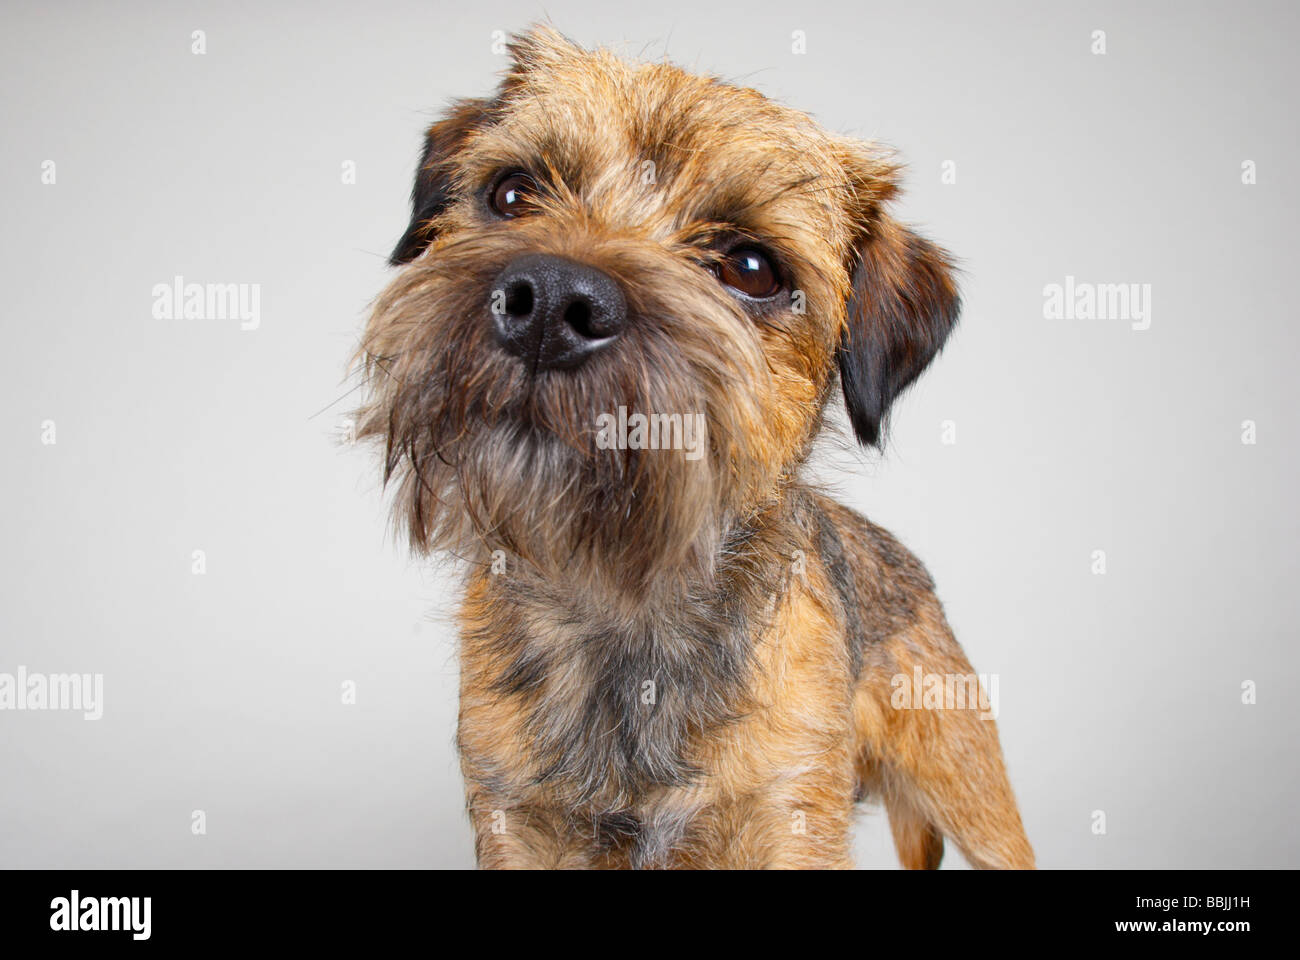 Wiry Terrier Stock Photos Wiry Terrier Stock Images Page 3 Alamy